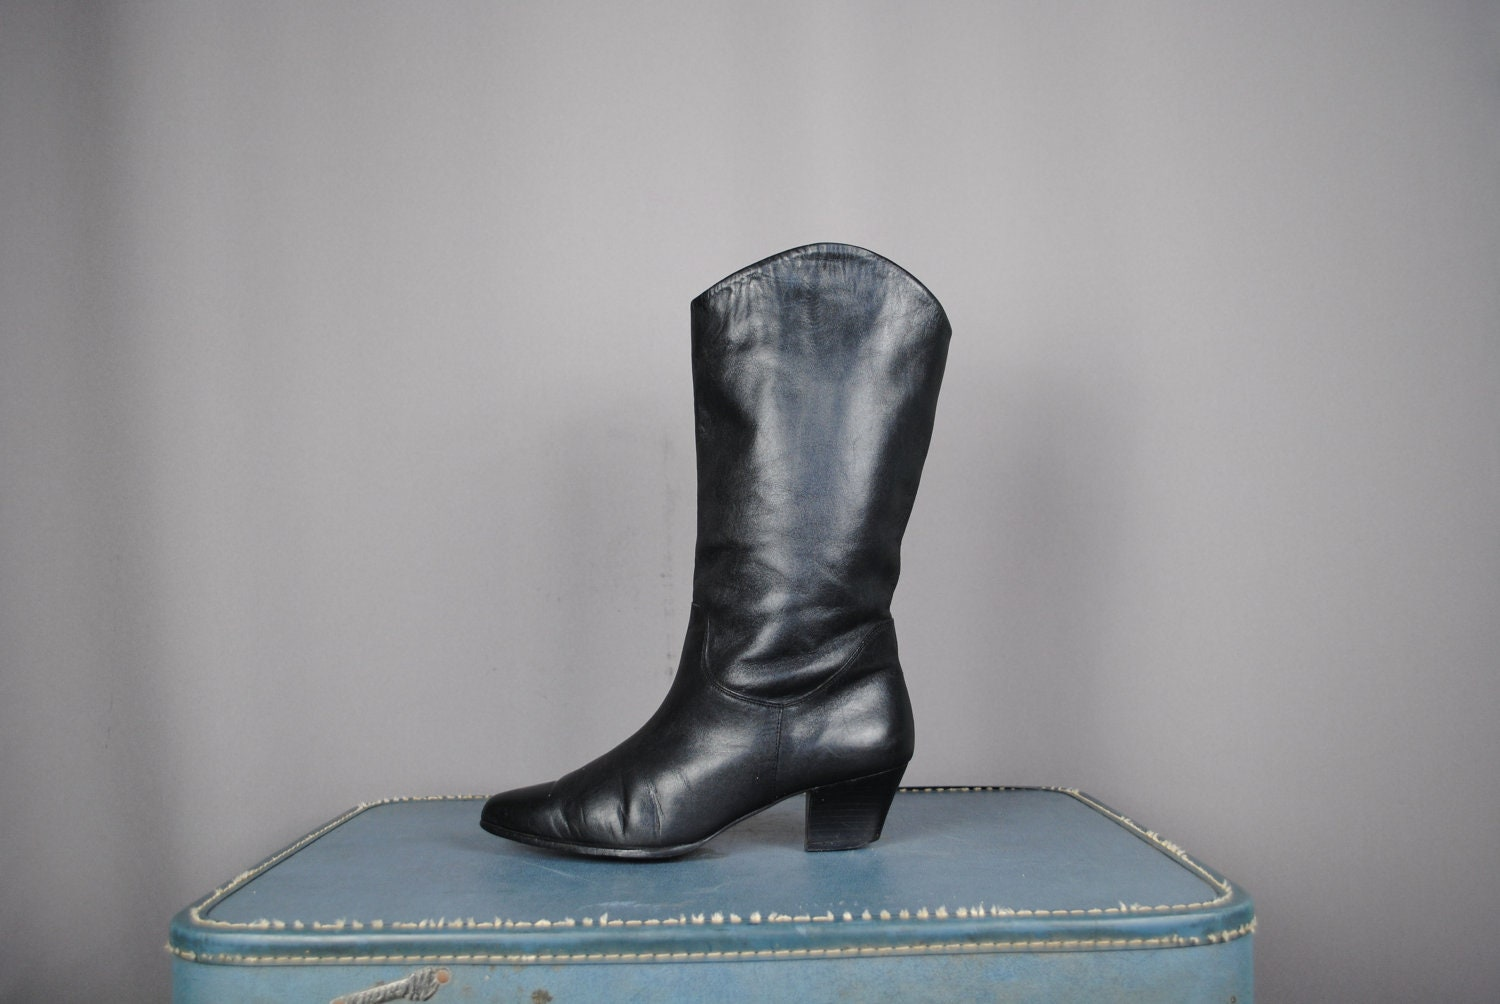 kitten heel black leather boots s size 8 by